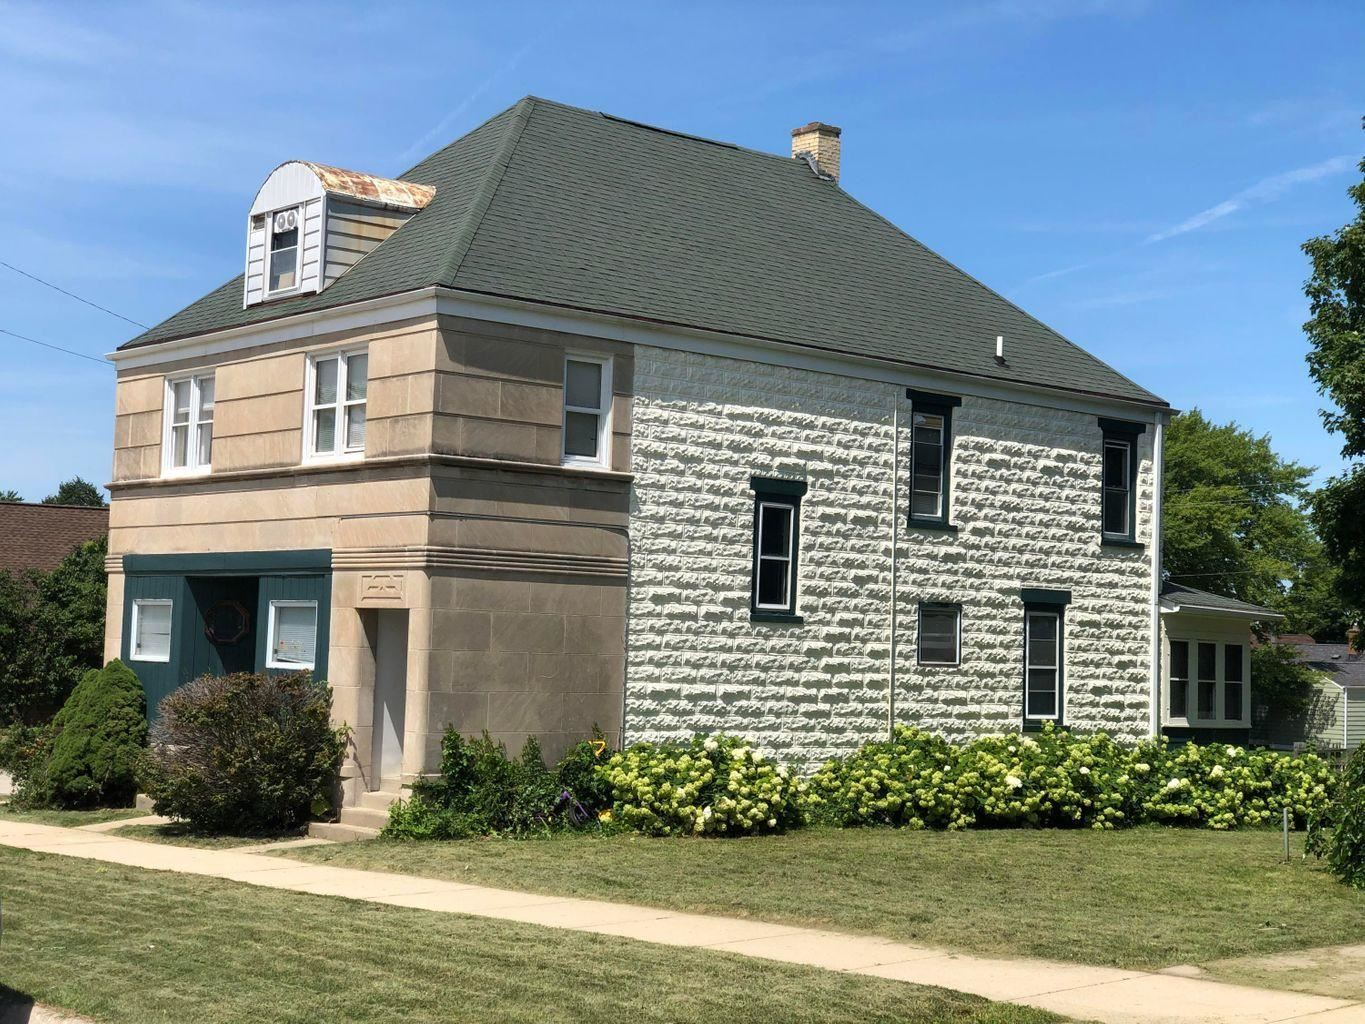 1334 Marquette Ave, South Milwaukee, WI 53172 - MLS#: 1743366